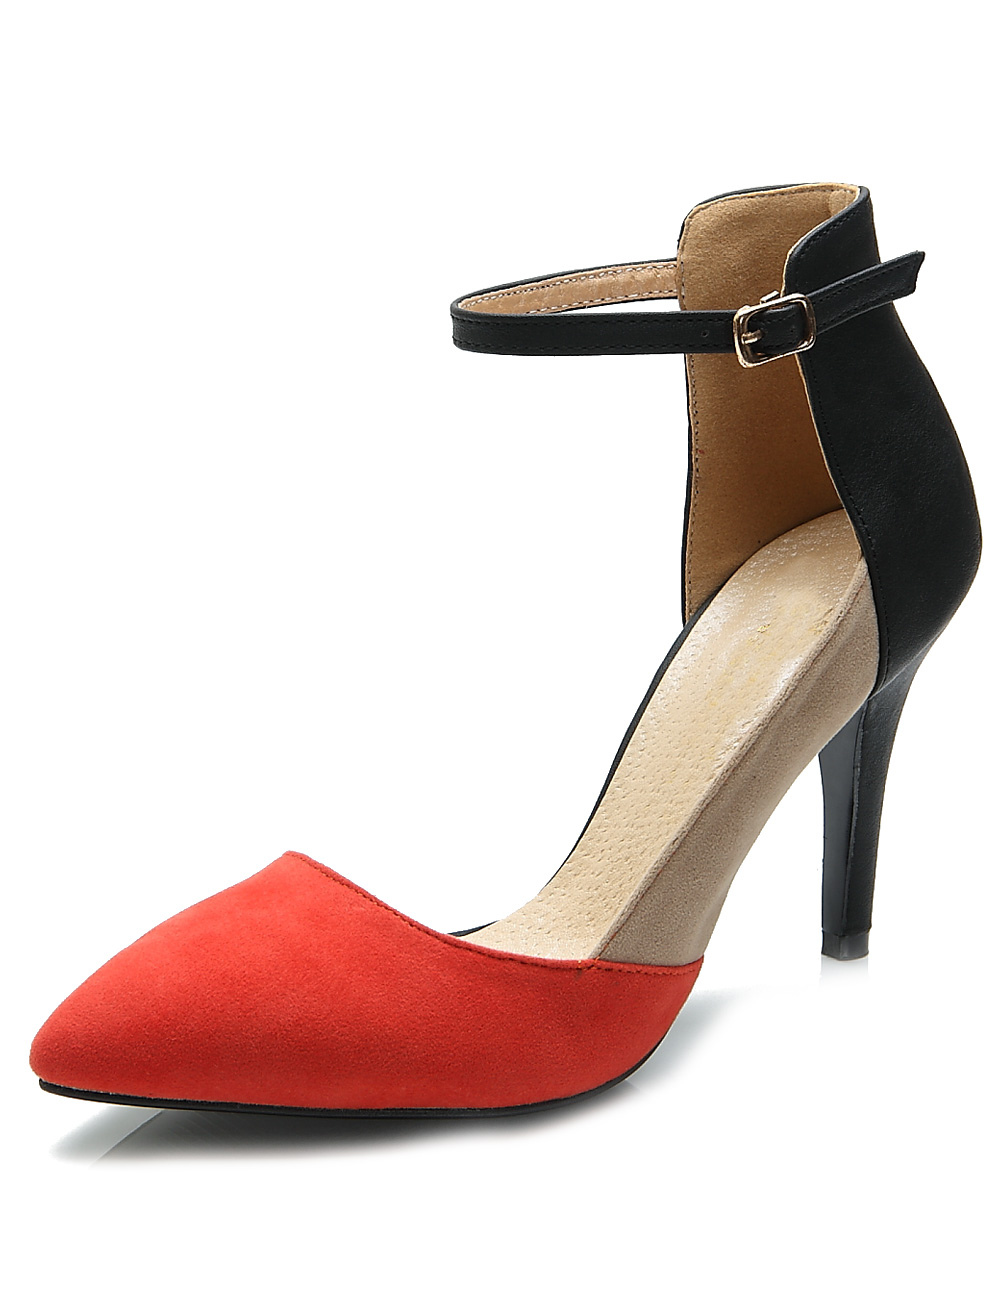 Pretty Red Stiletto Heel Suede Leather Women's Pointy Toe Heels thumbnail